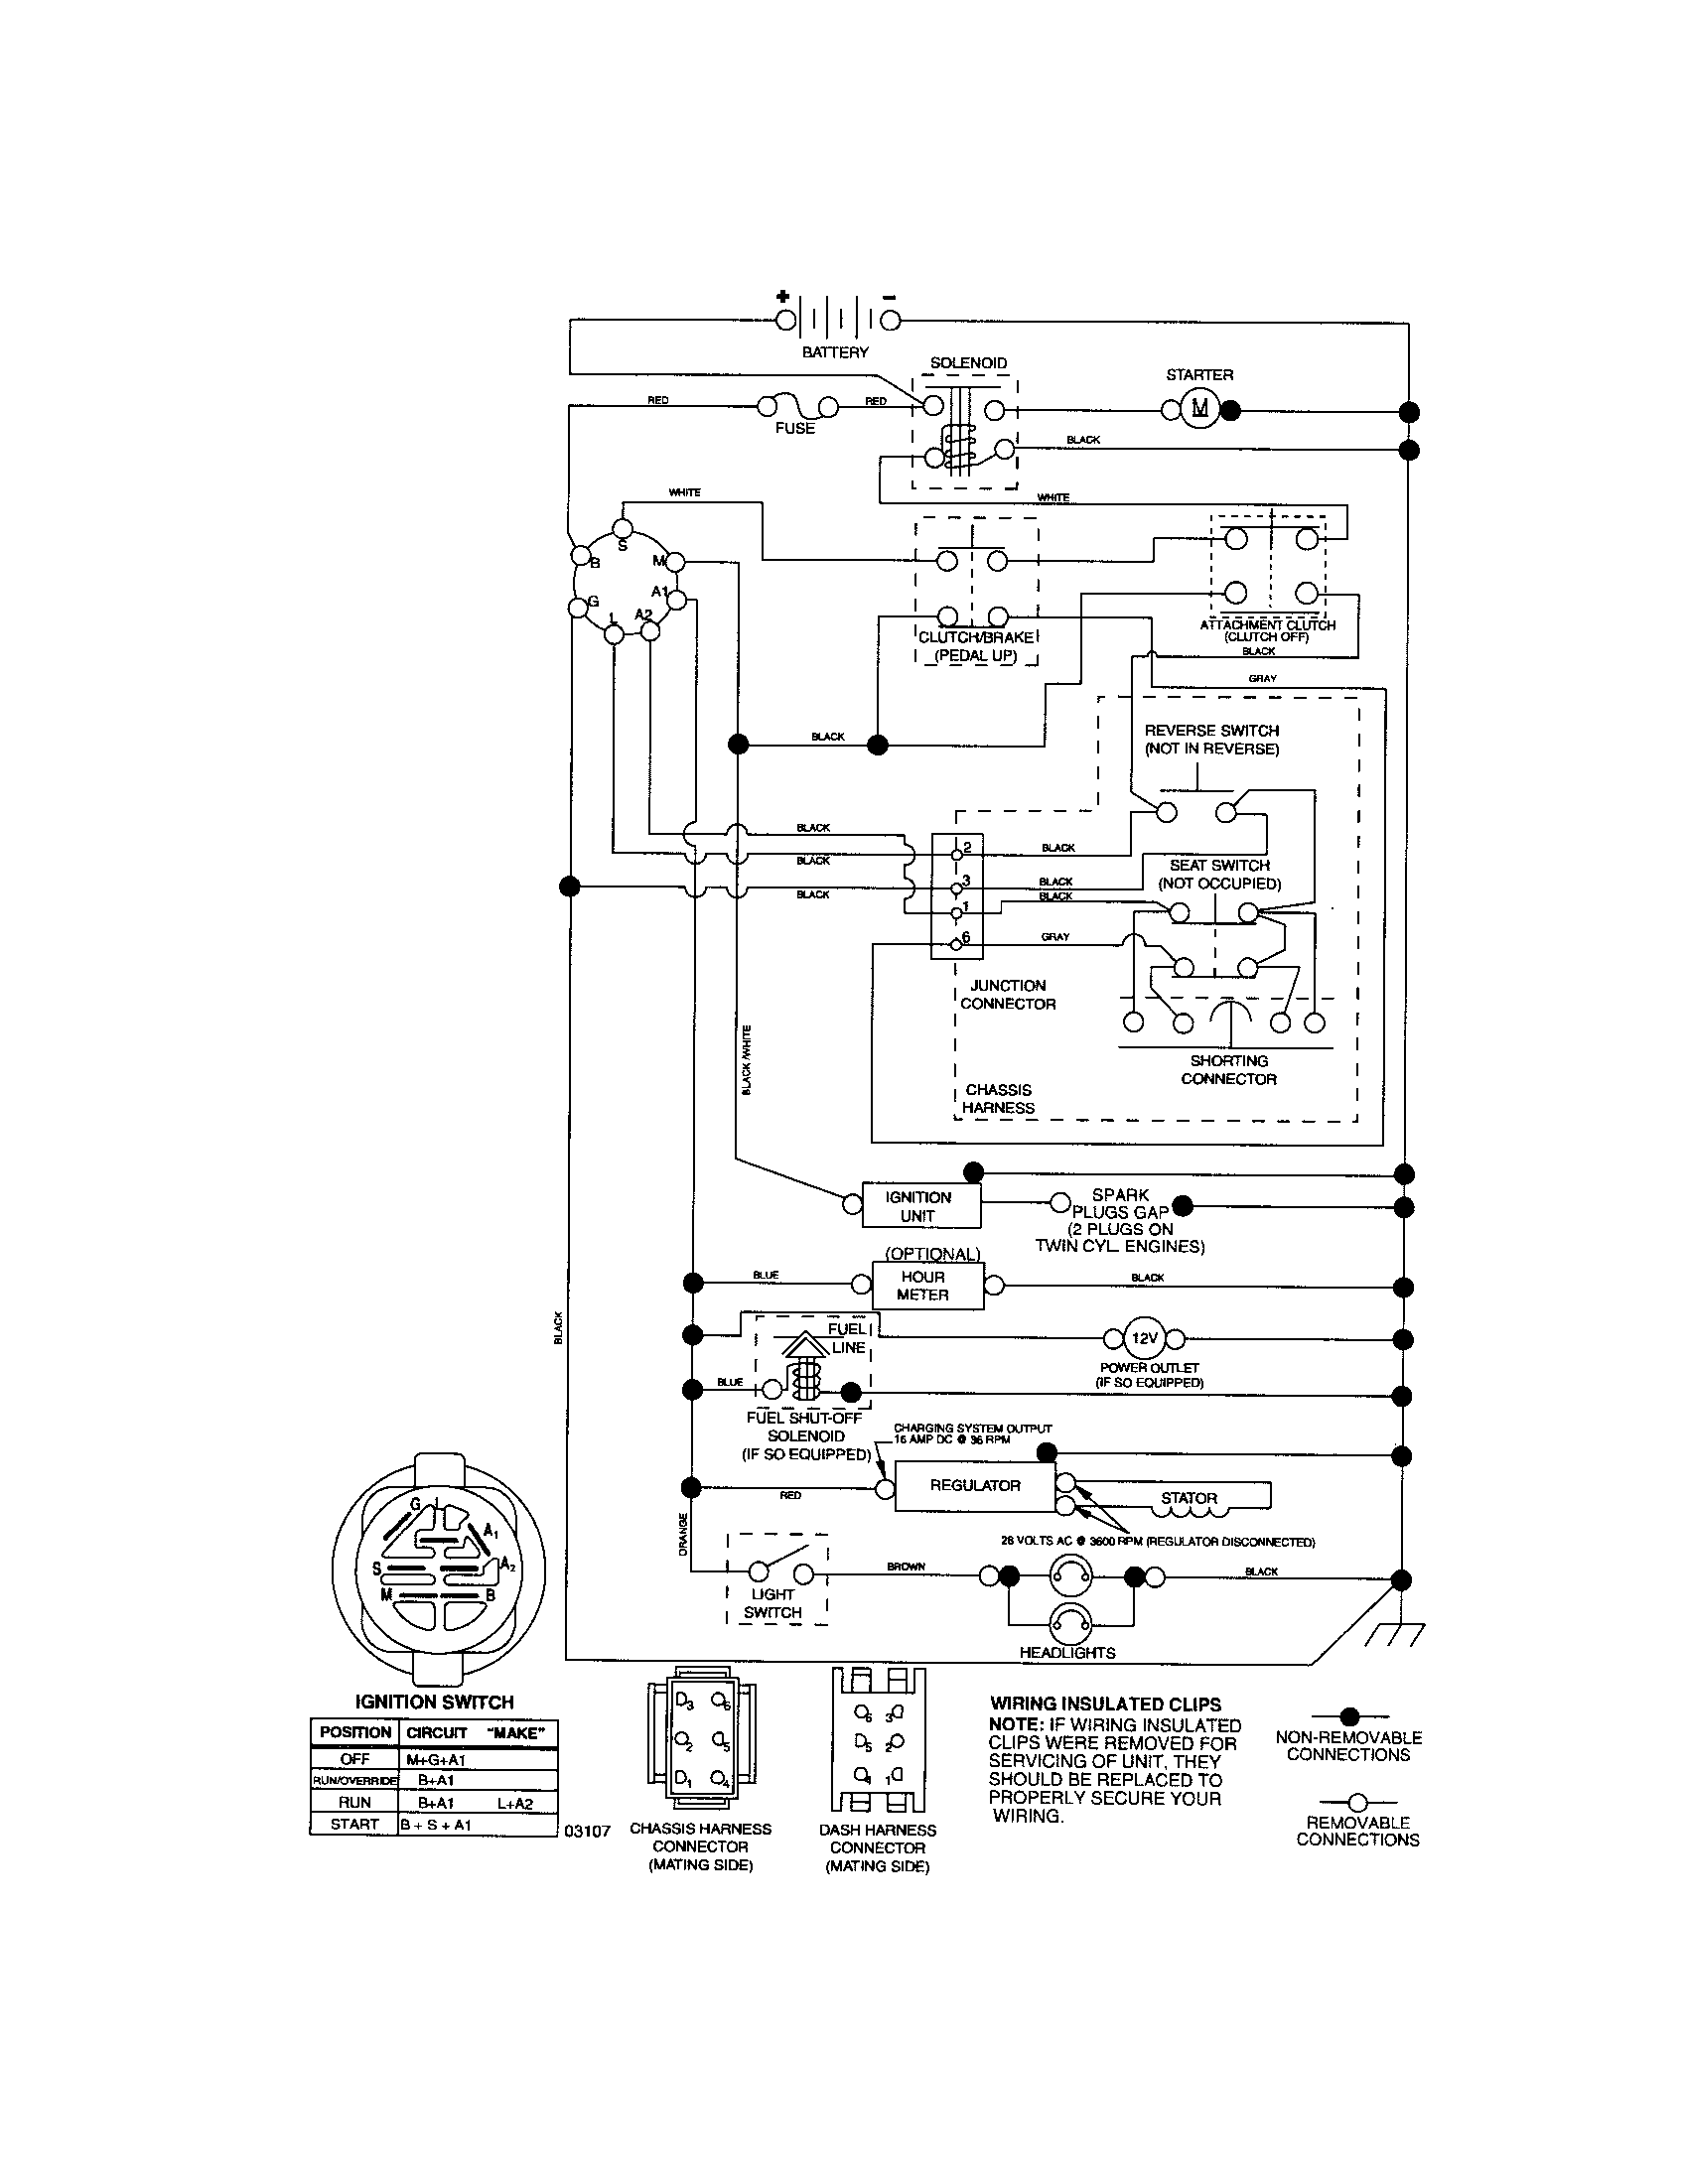 6af5f1447fd13c8443376822ddc1e105 craftsman riding mower electrical diagram wiring diagram Sears Battery Charger at aneh.co